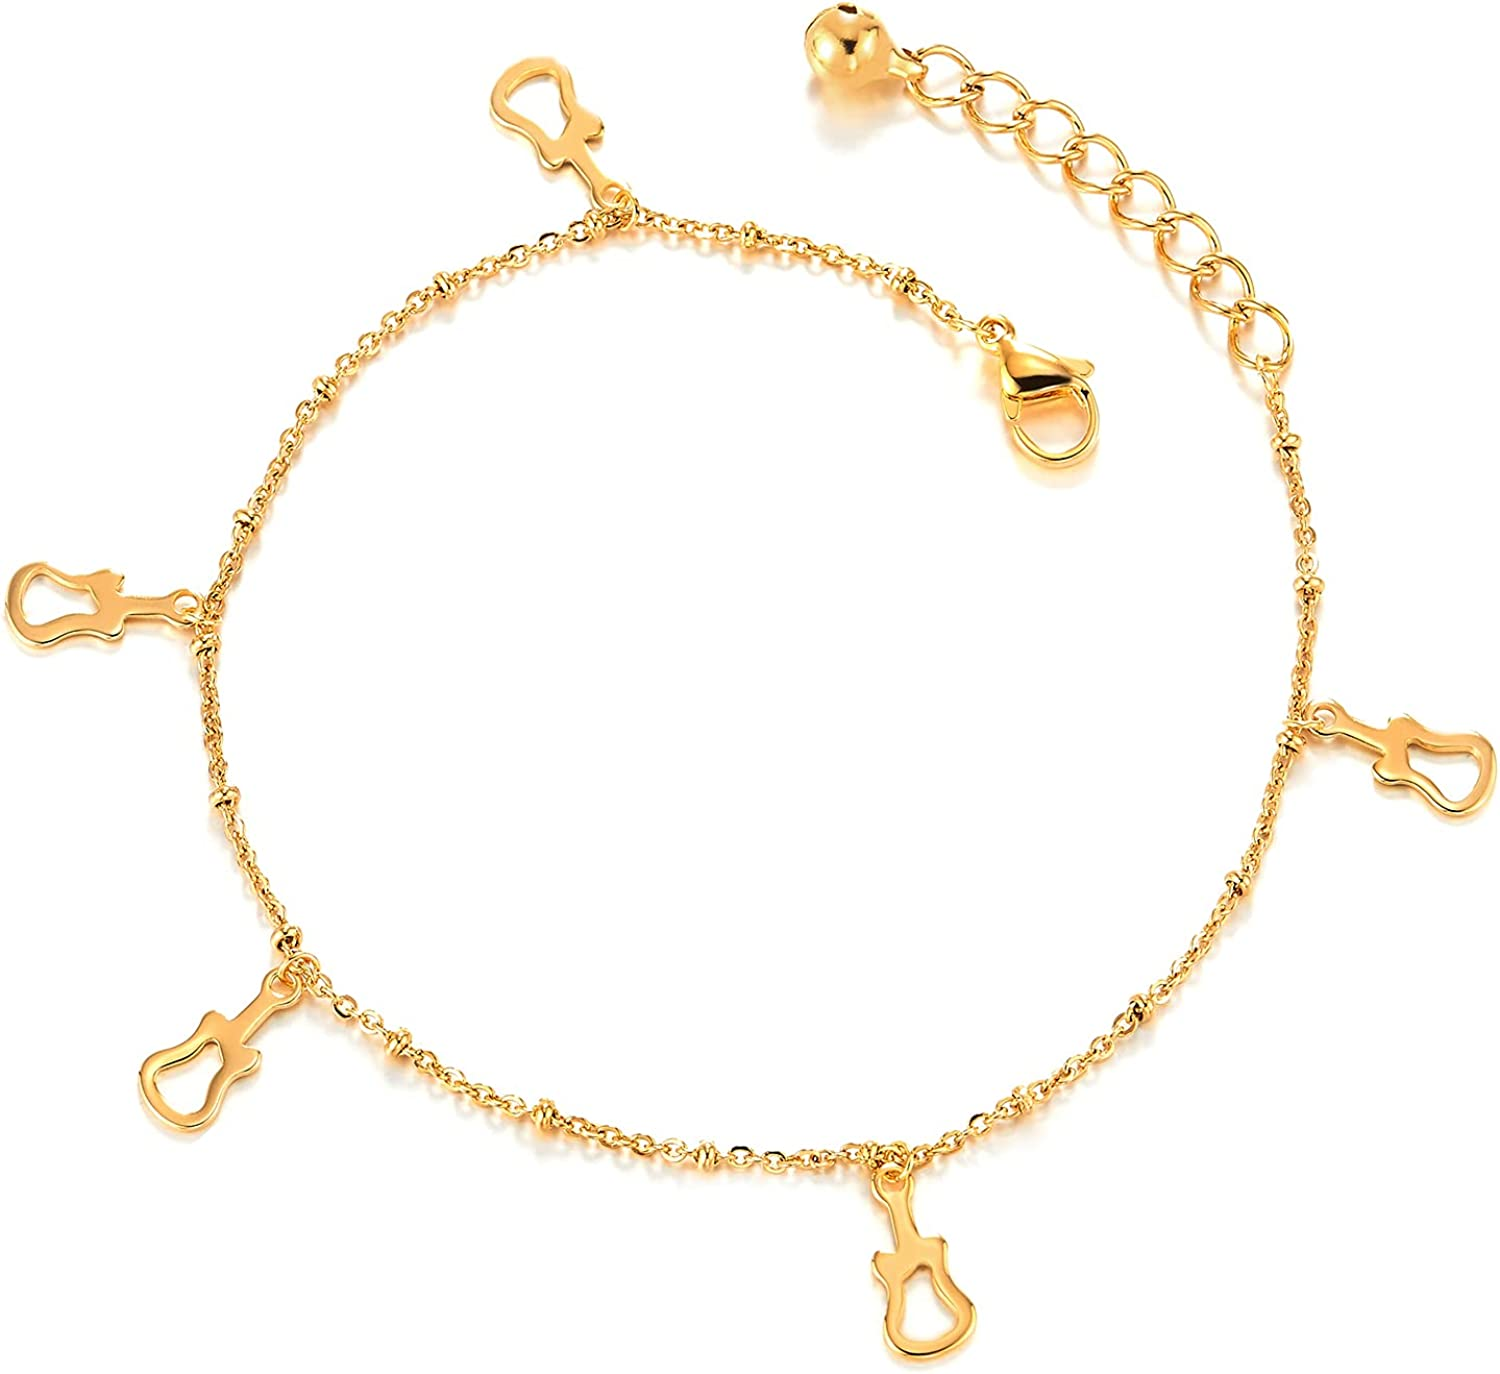 Stainless Steel Gold Color Anklet Bracelet with Dangling Charms of Guitars and Jingle Bell